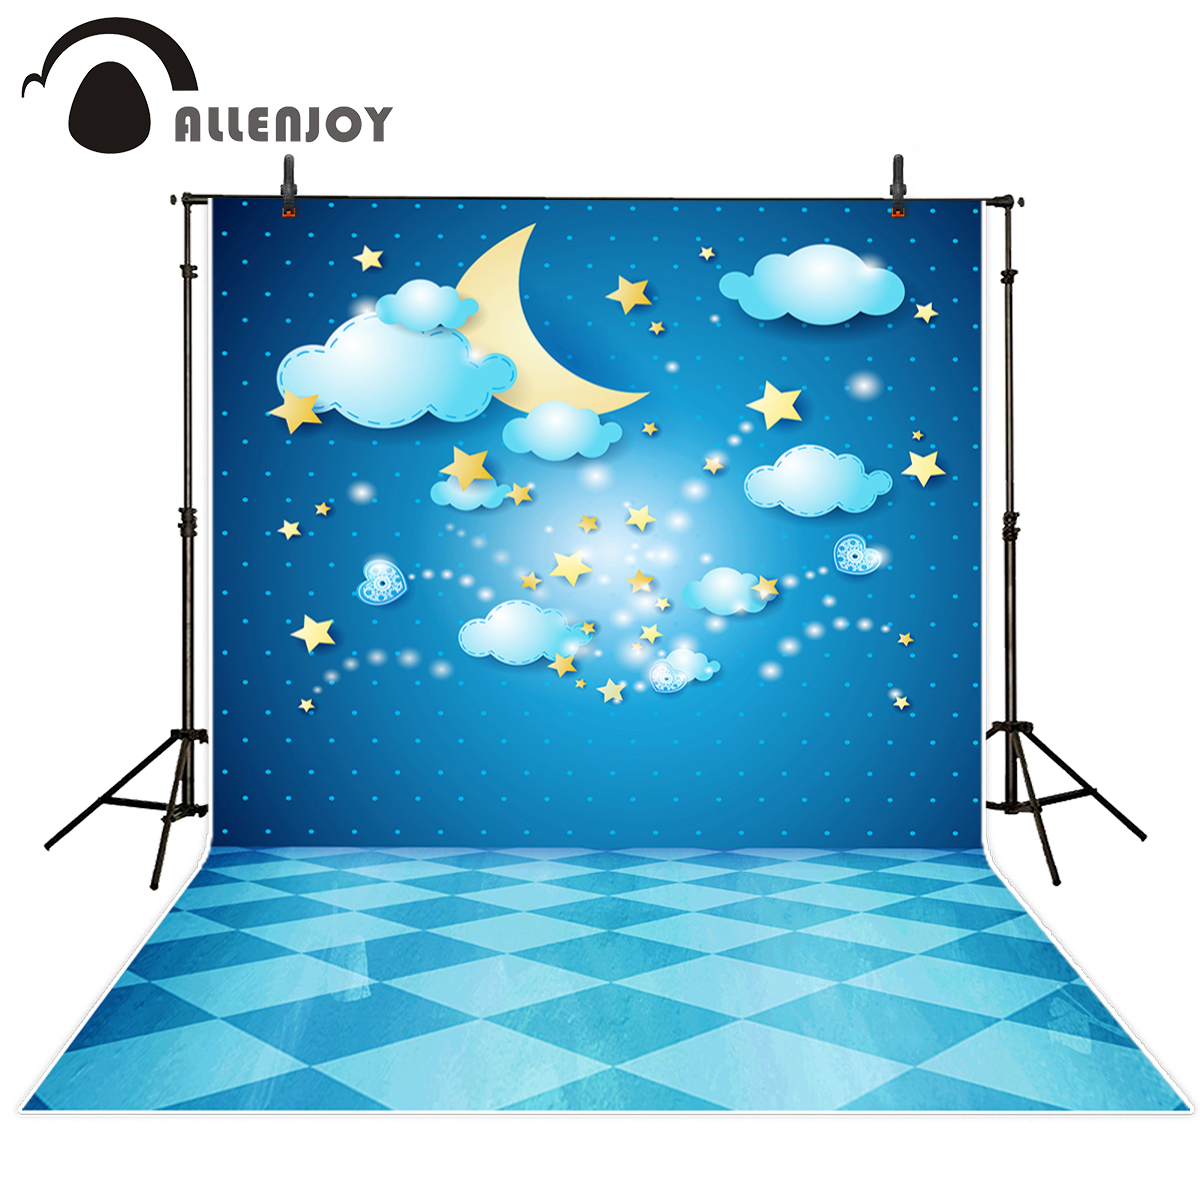 Allenjoy photography backdrop Clouds Stars Moon Love Places Ground Baptized Children background photo studio camera fotografica ...